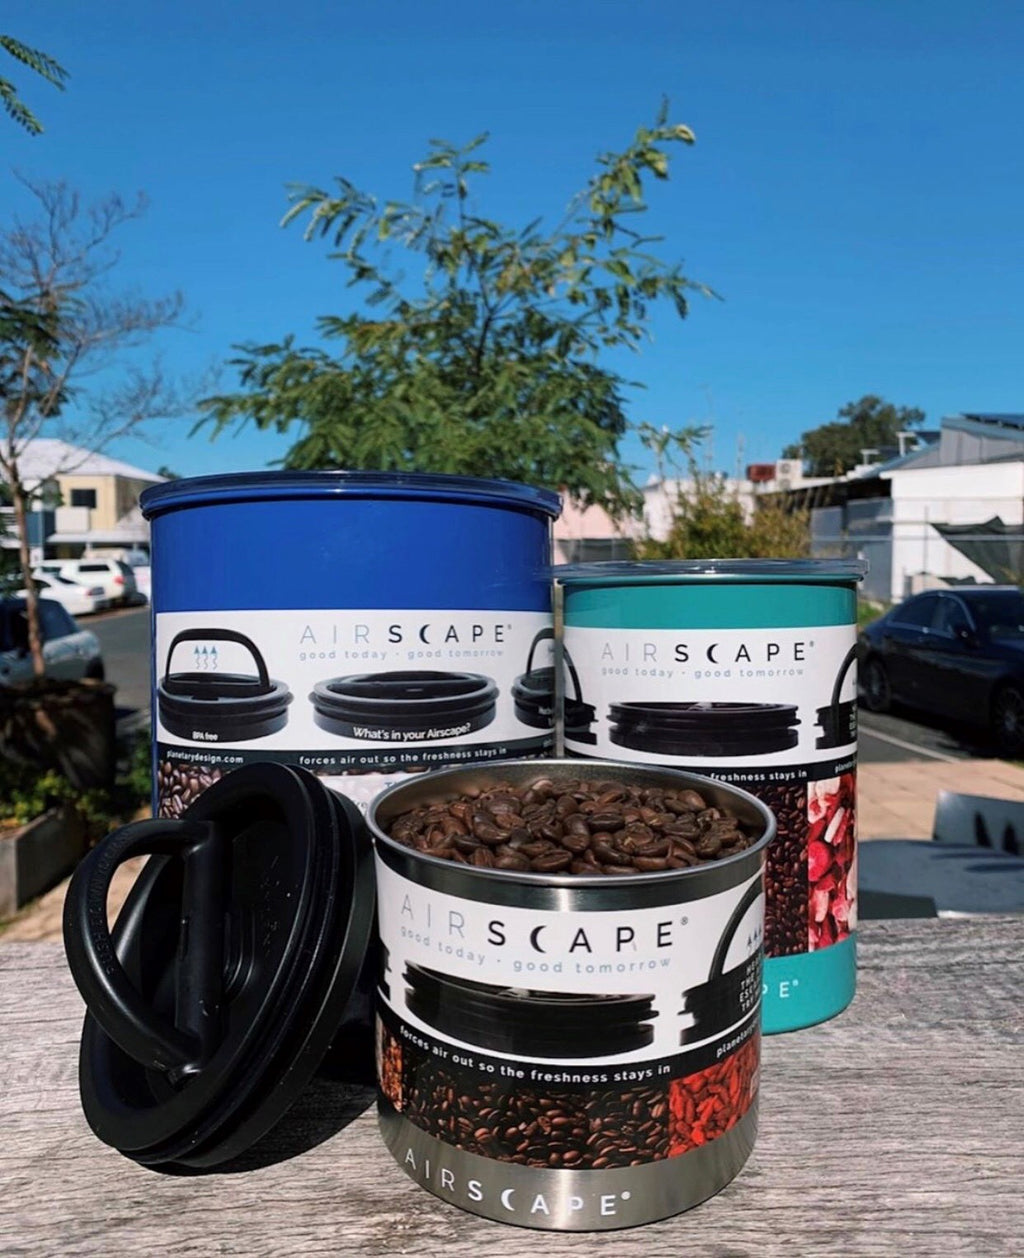 AIRSCAPE COFFEE CONTAINERS